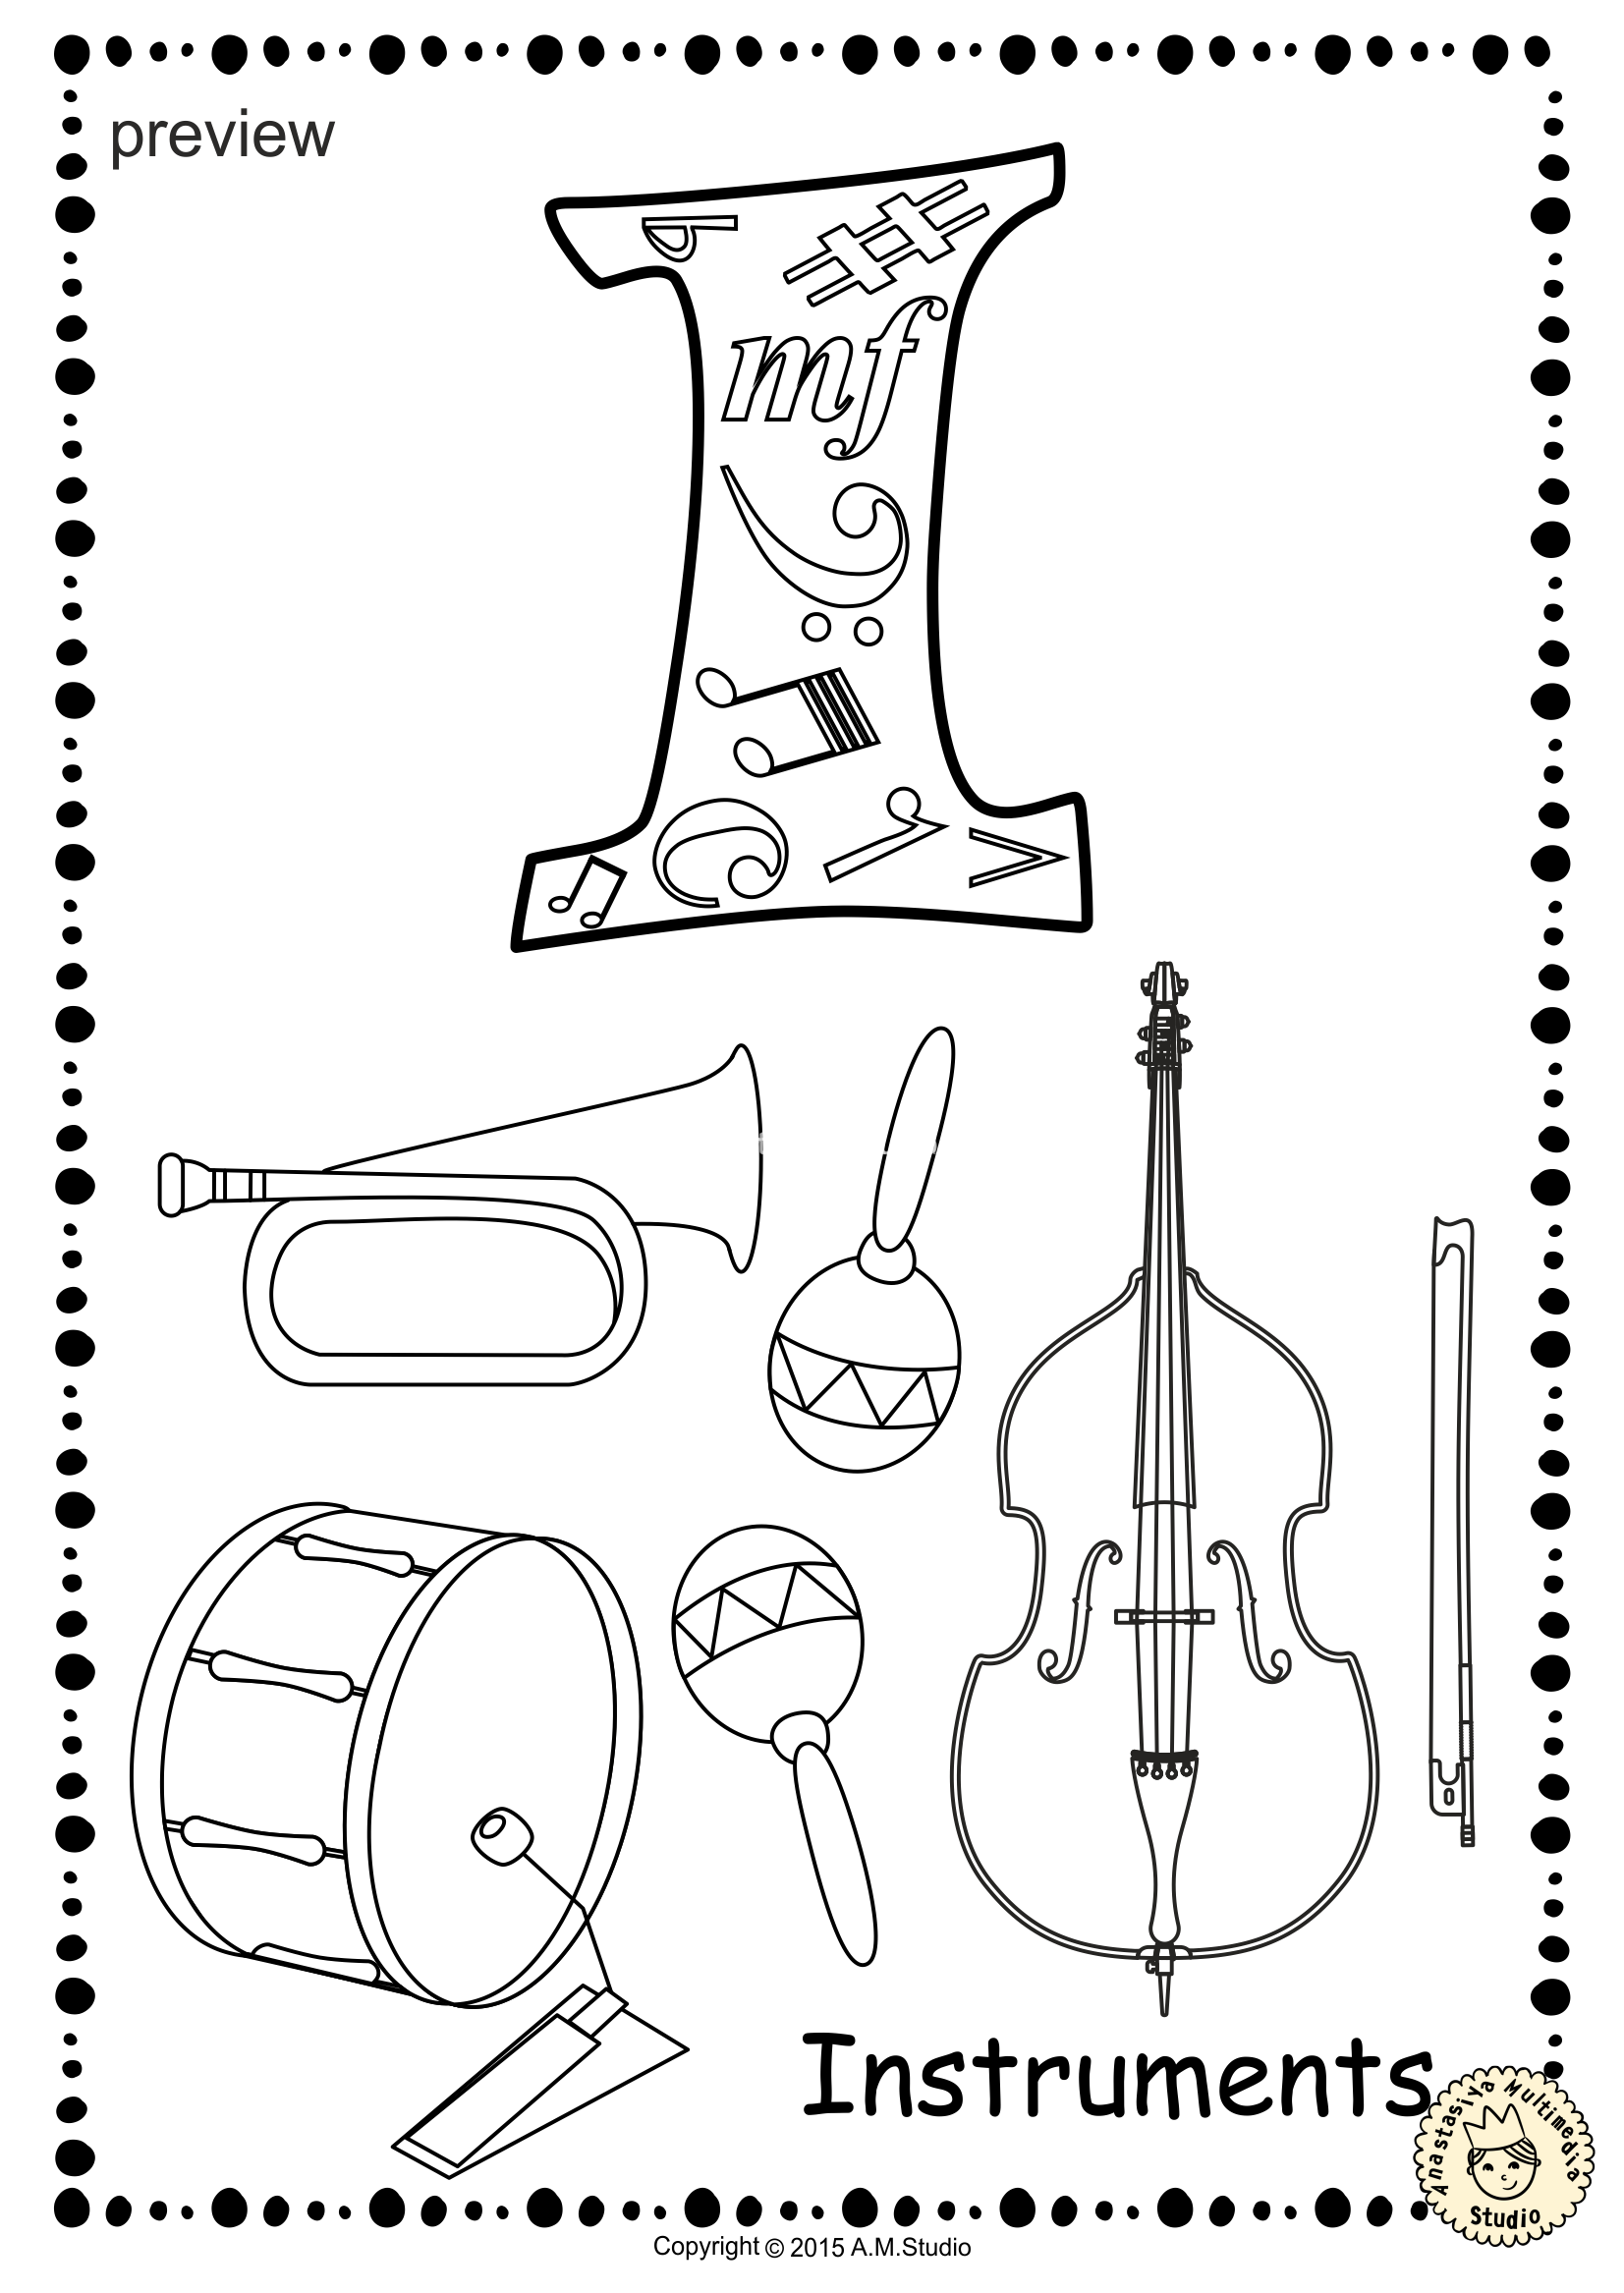 music note coloring pages pdf music alphabet coloring pages anastasiya multimedia studio pdf coloring note pages music